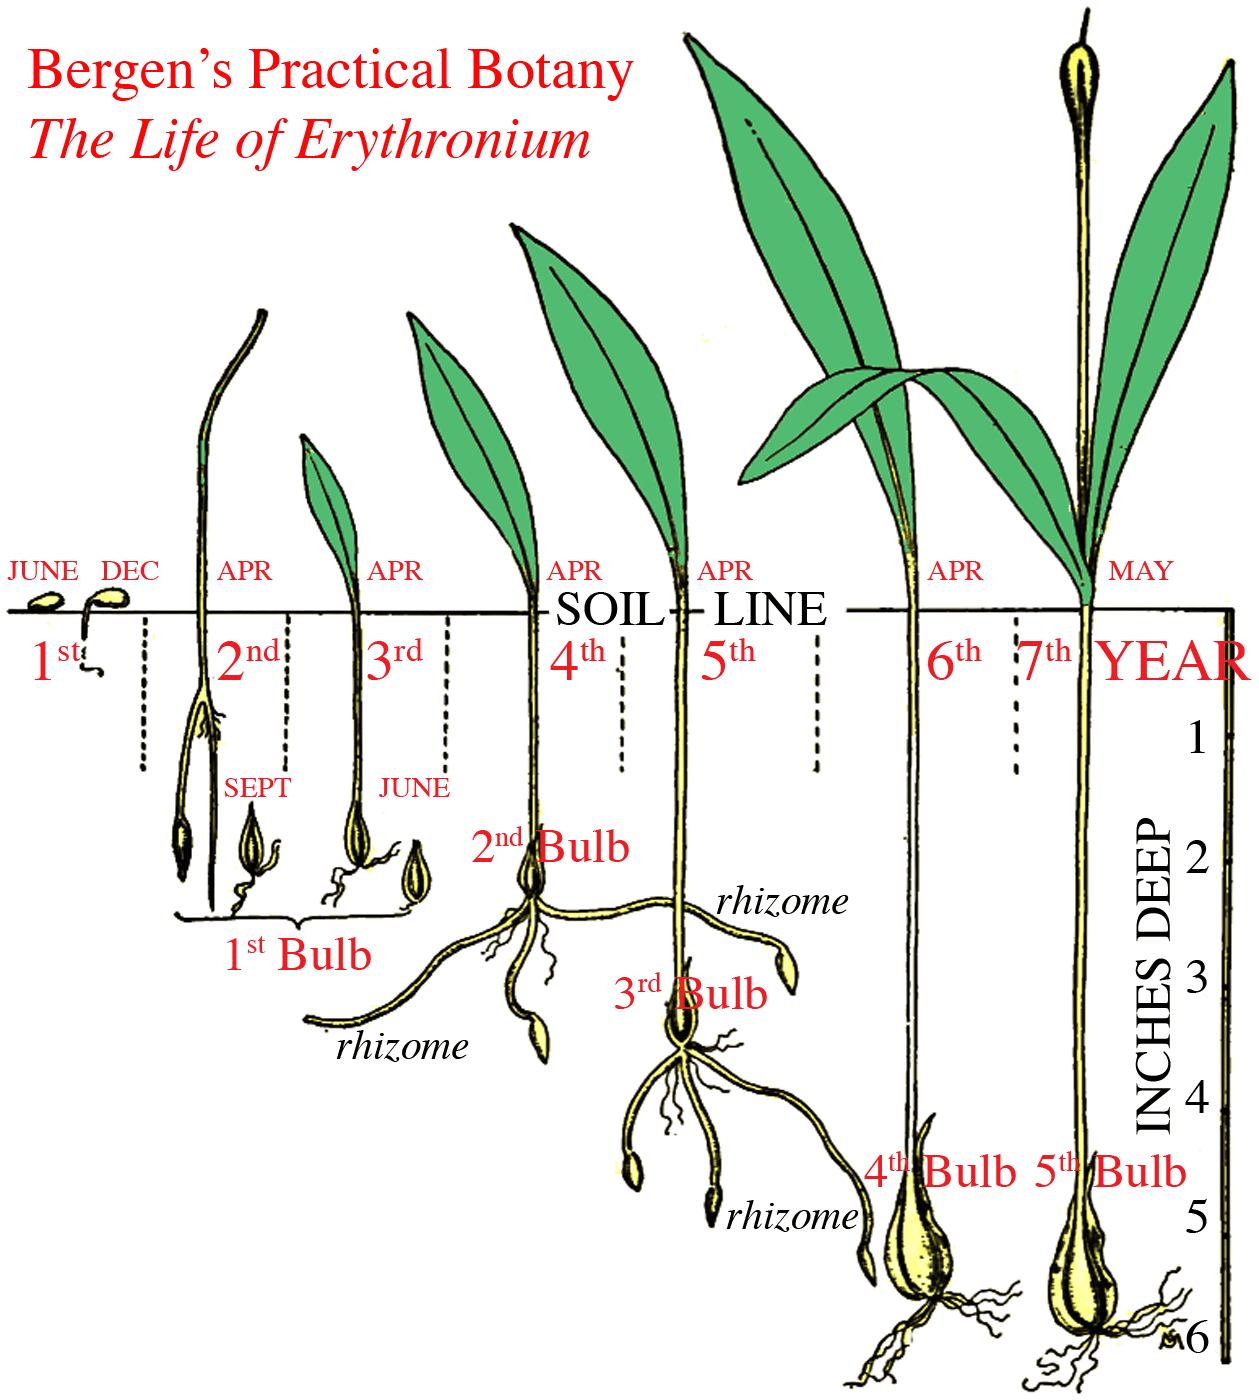 anthesis silking interval corn Drought stress in maize (zea mays l)  pollen and silk development, anthesis silking interval, pollination, and embryo, endosperm and kernel development.